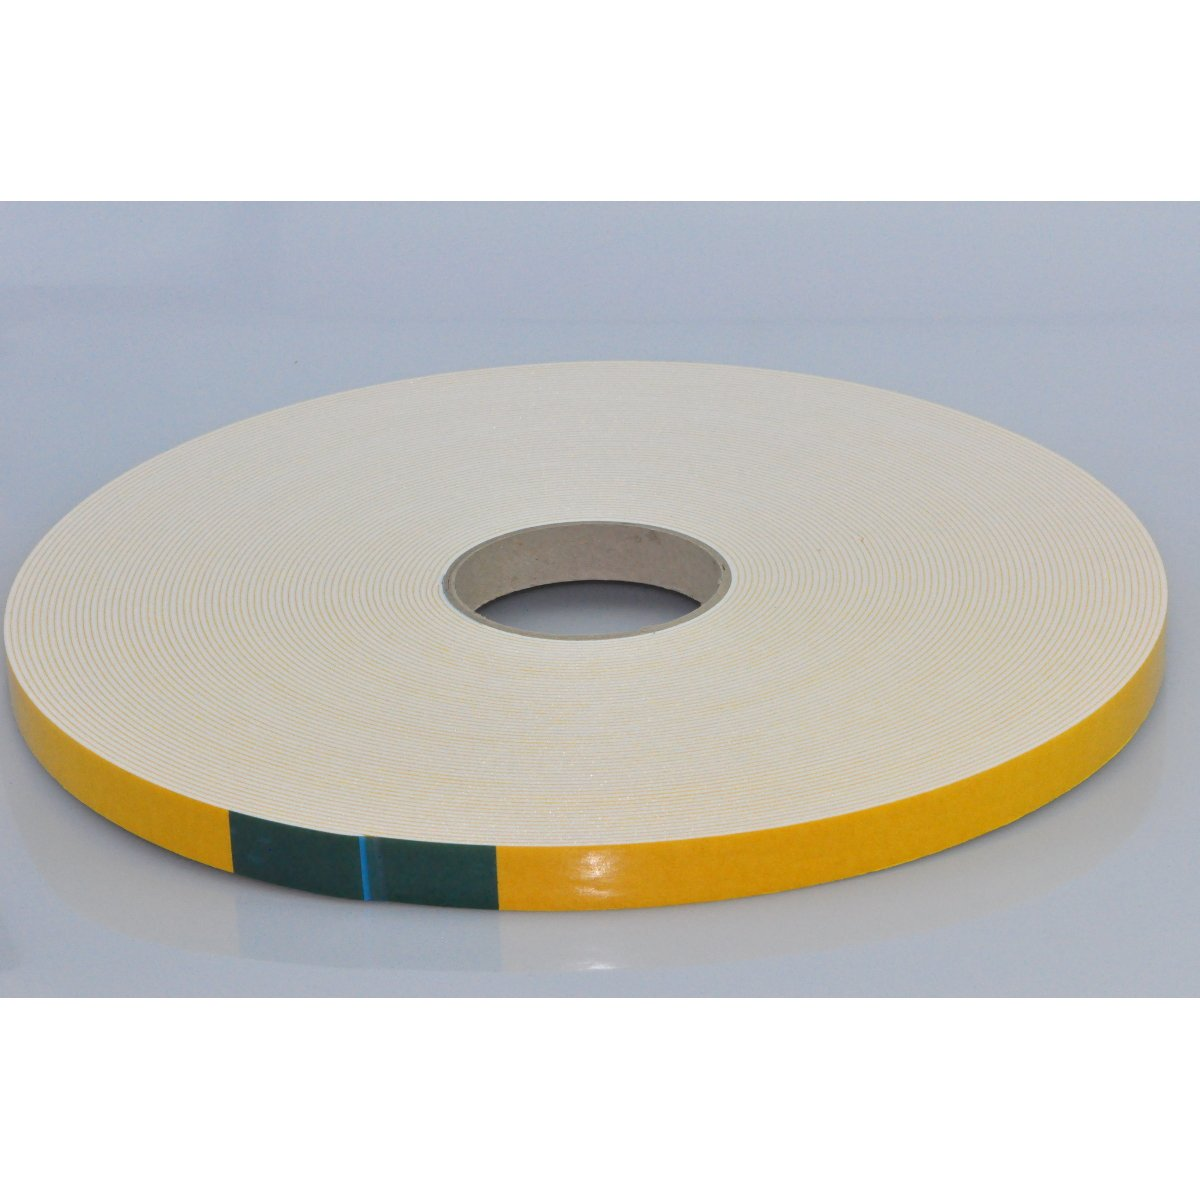 19mm x 2mm x 40 Metre Double Sided Foam Tape